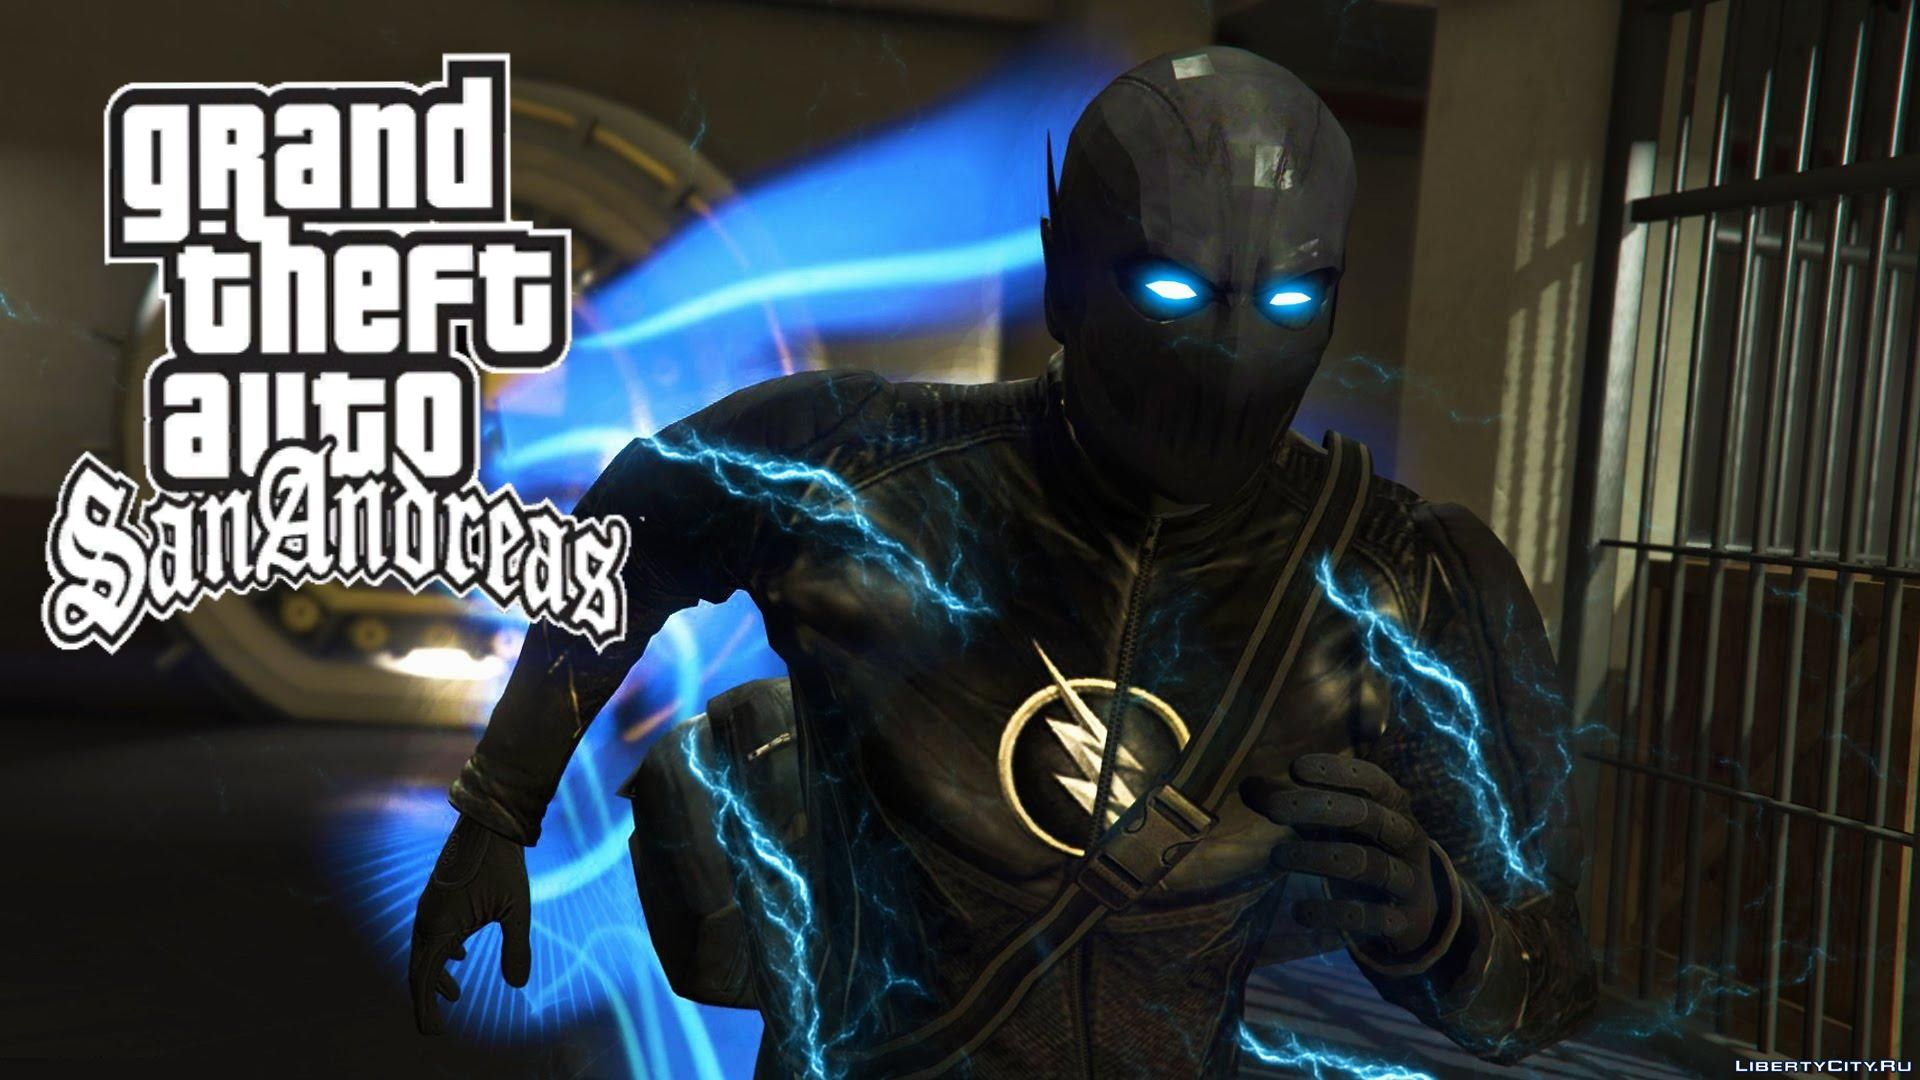 gta san andreas mod full game download for pc